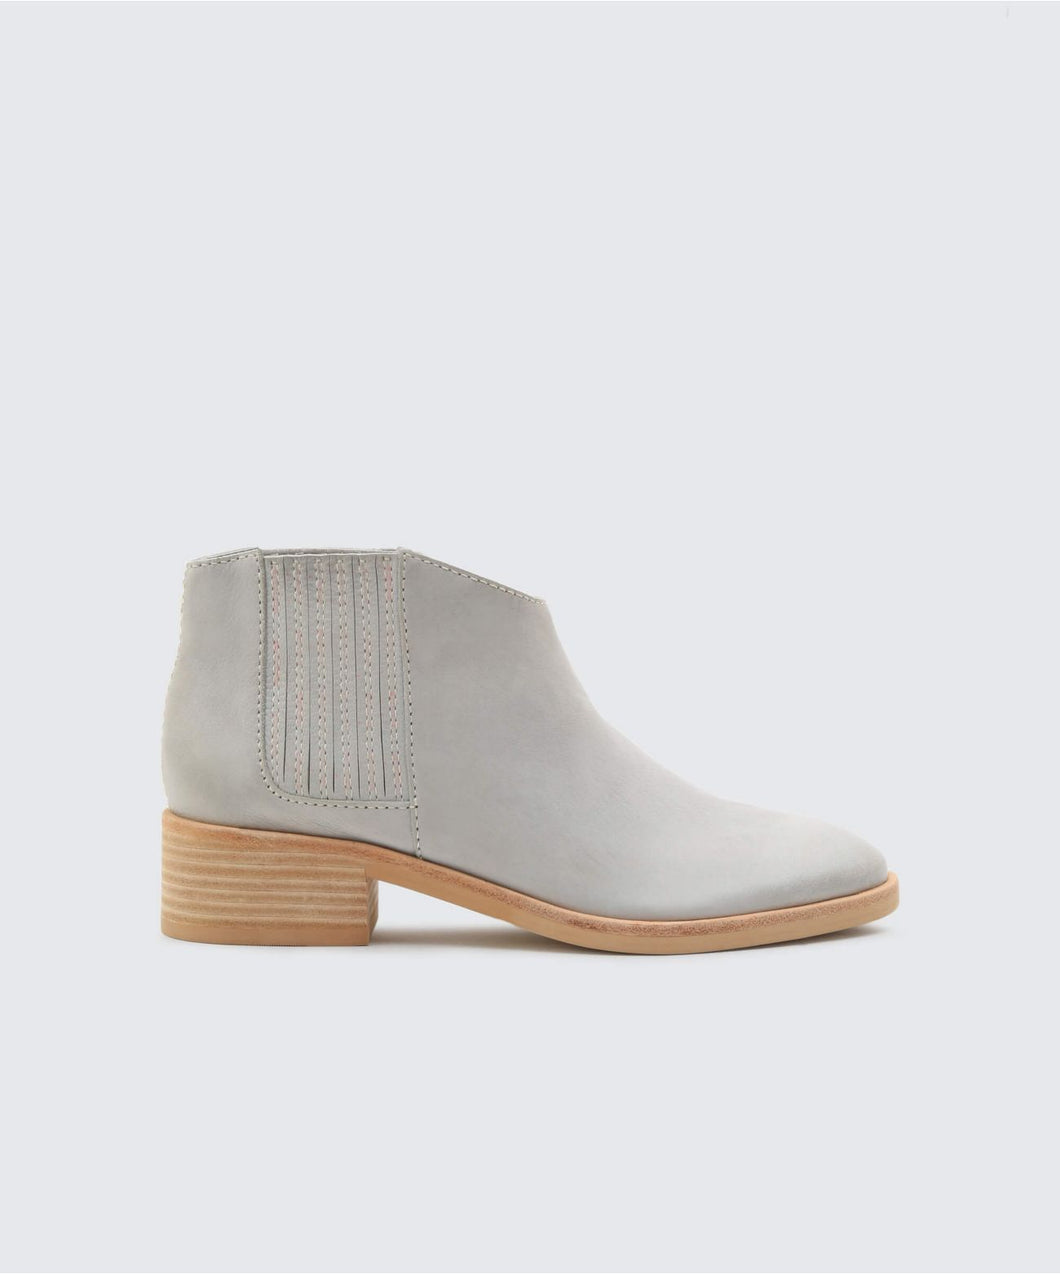 TOWNE BOOTIES IN ICE BLUE -   Dolce Vita